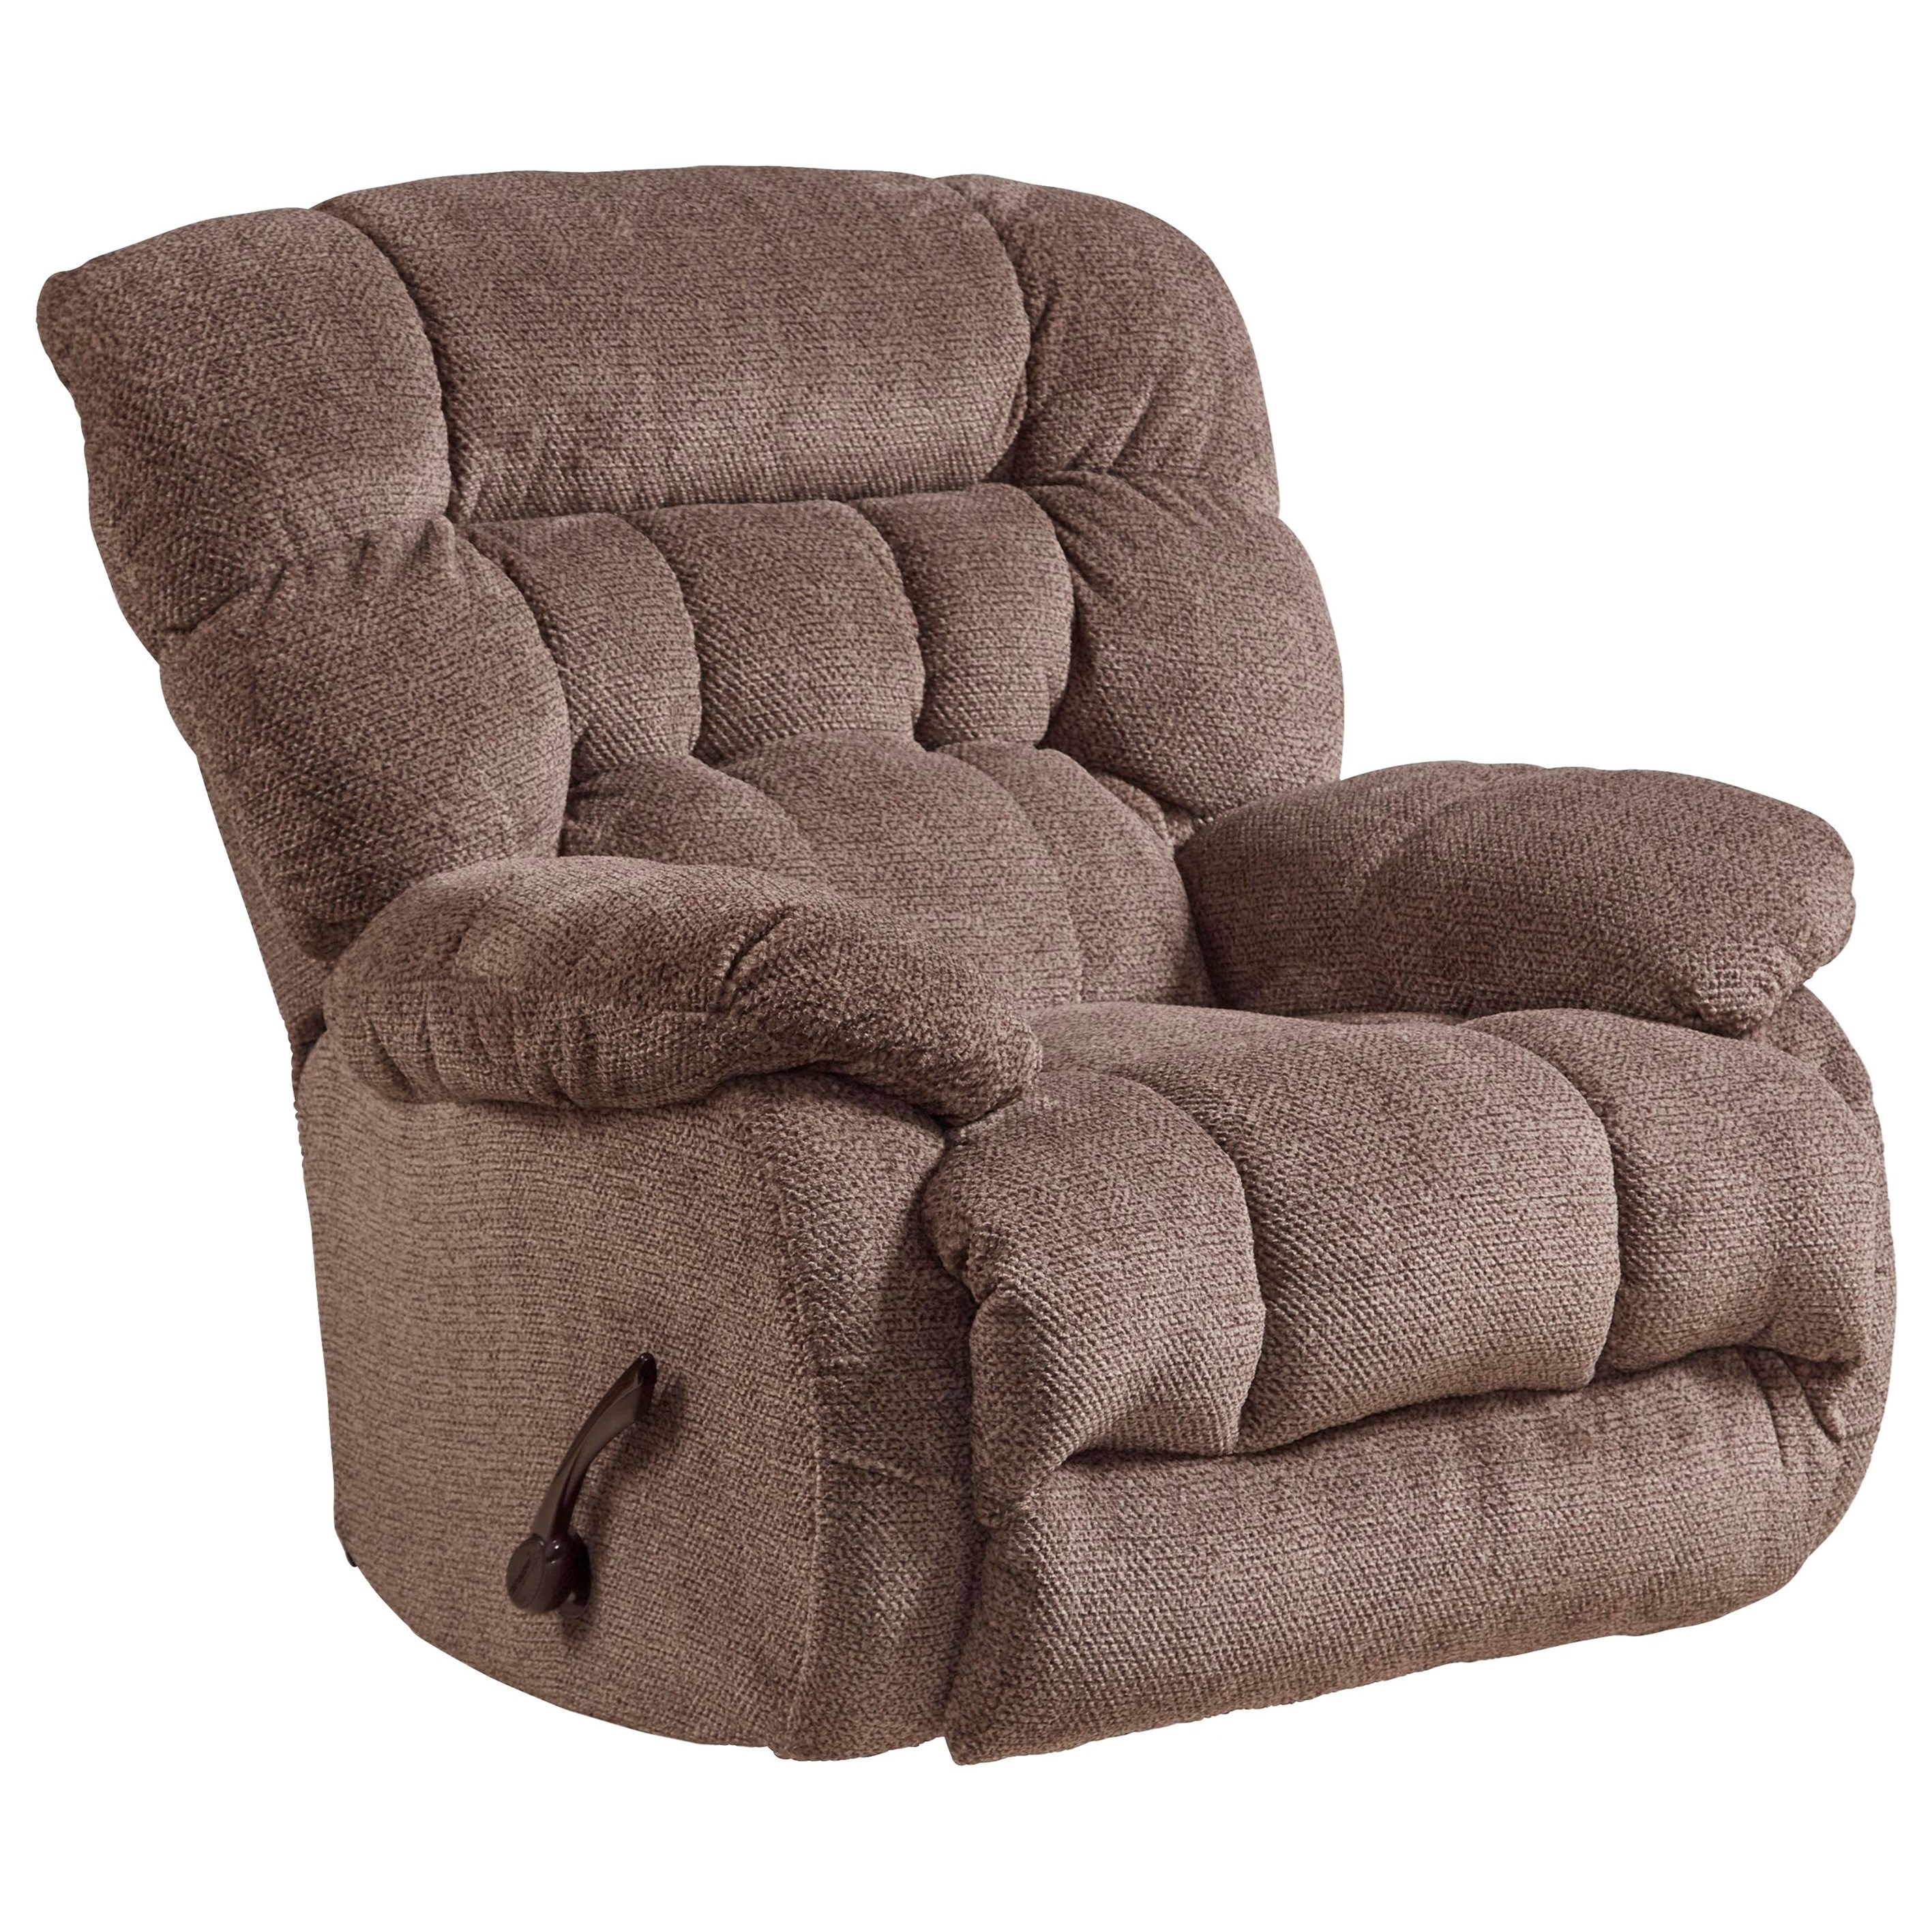 Catnapper Chair Catnapper Motion Chairs And Recliners Daly Swivel Glider